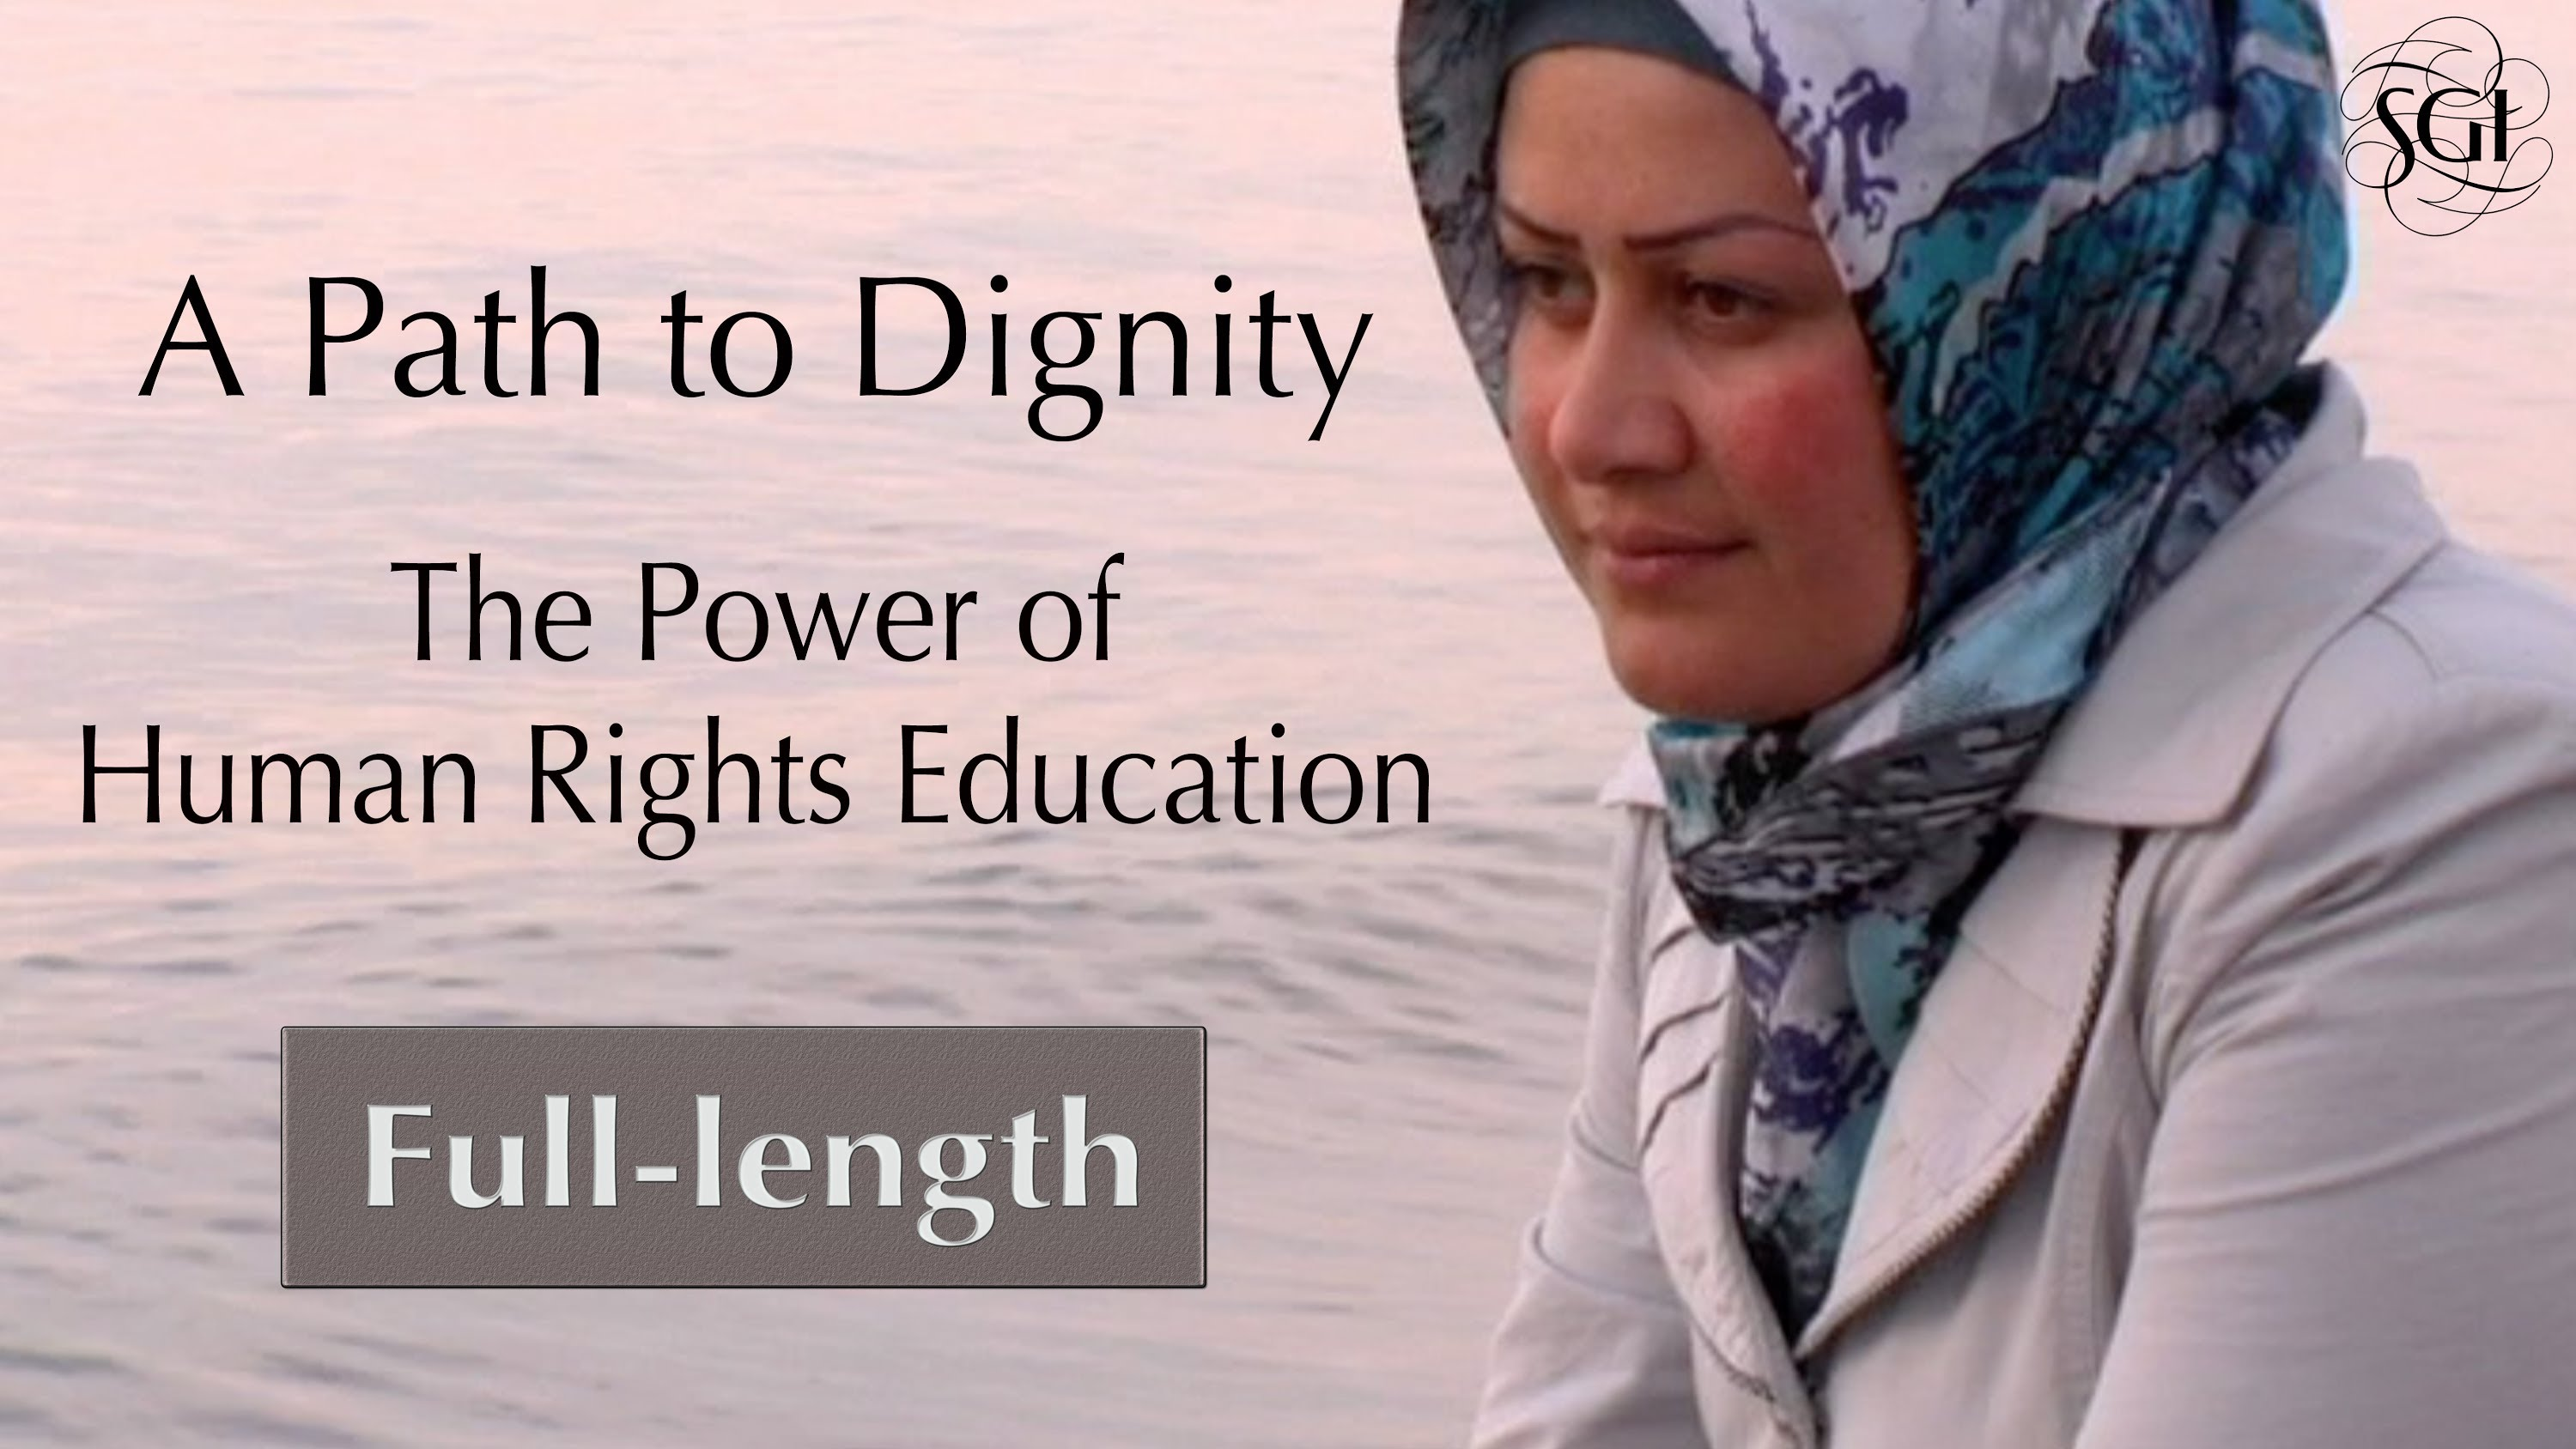 A path to dignity the power of human rights education